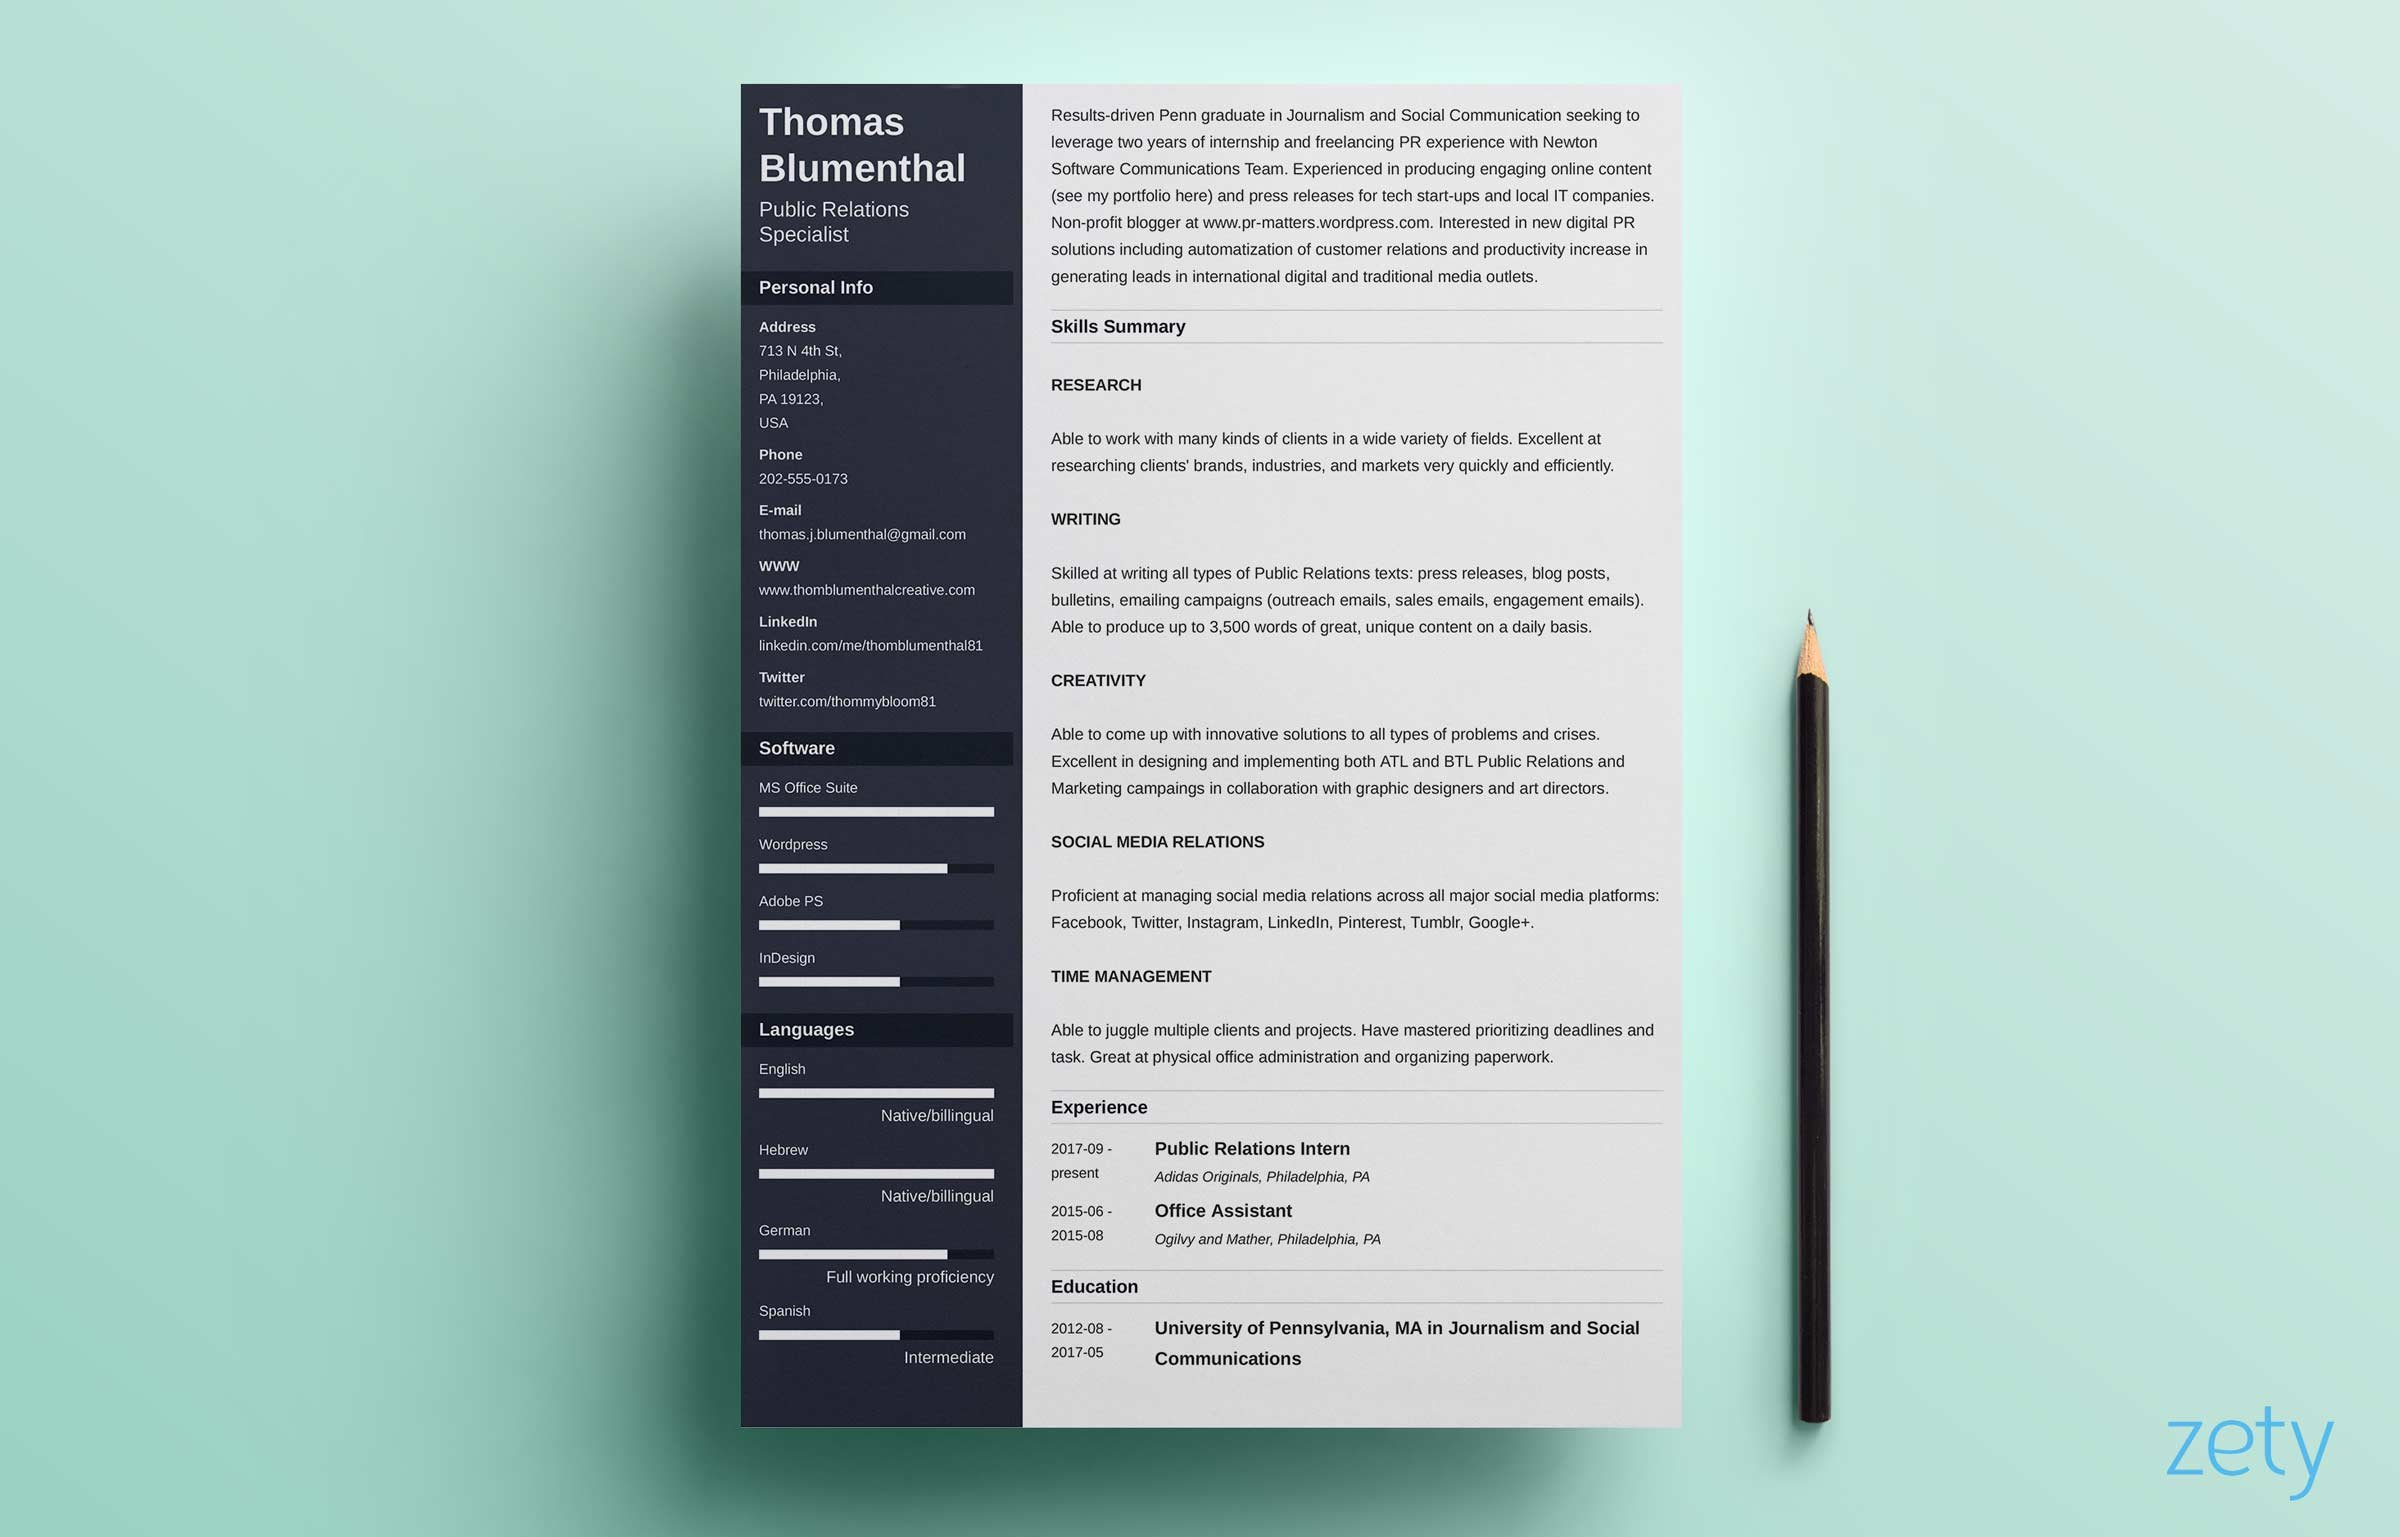 functional resume examples skills based templates core template for word free sample Resume Core Functional Resume Template For Word Free